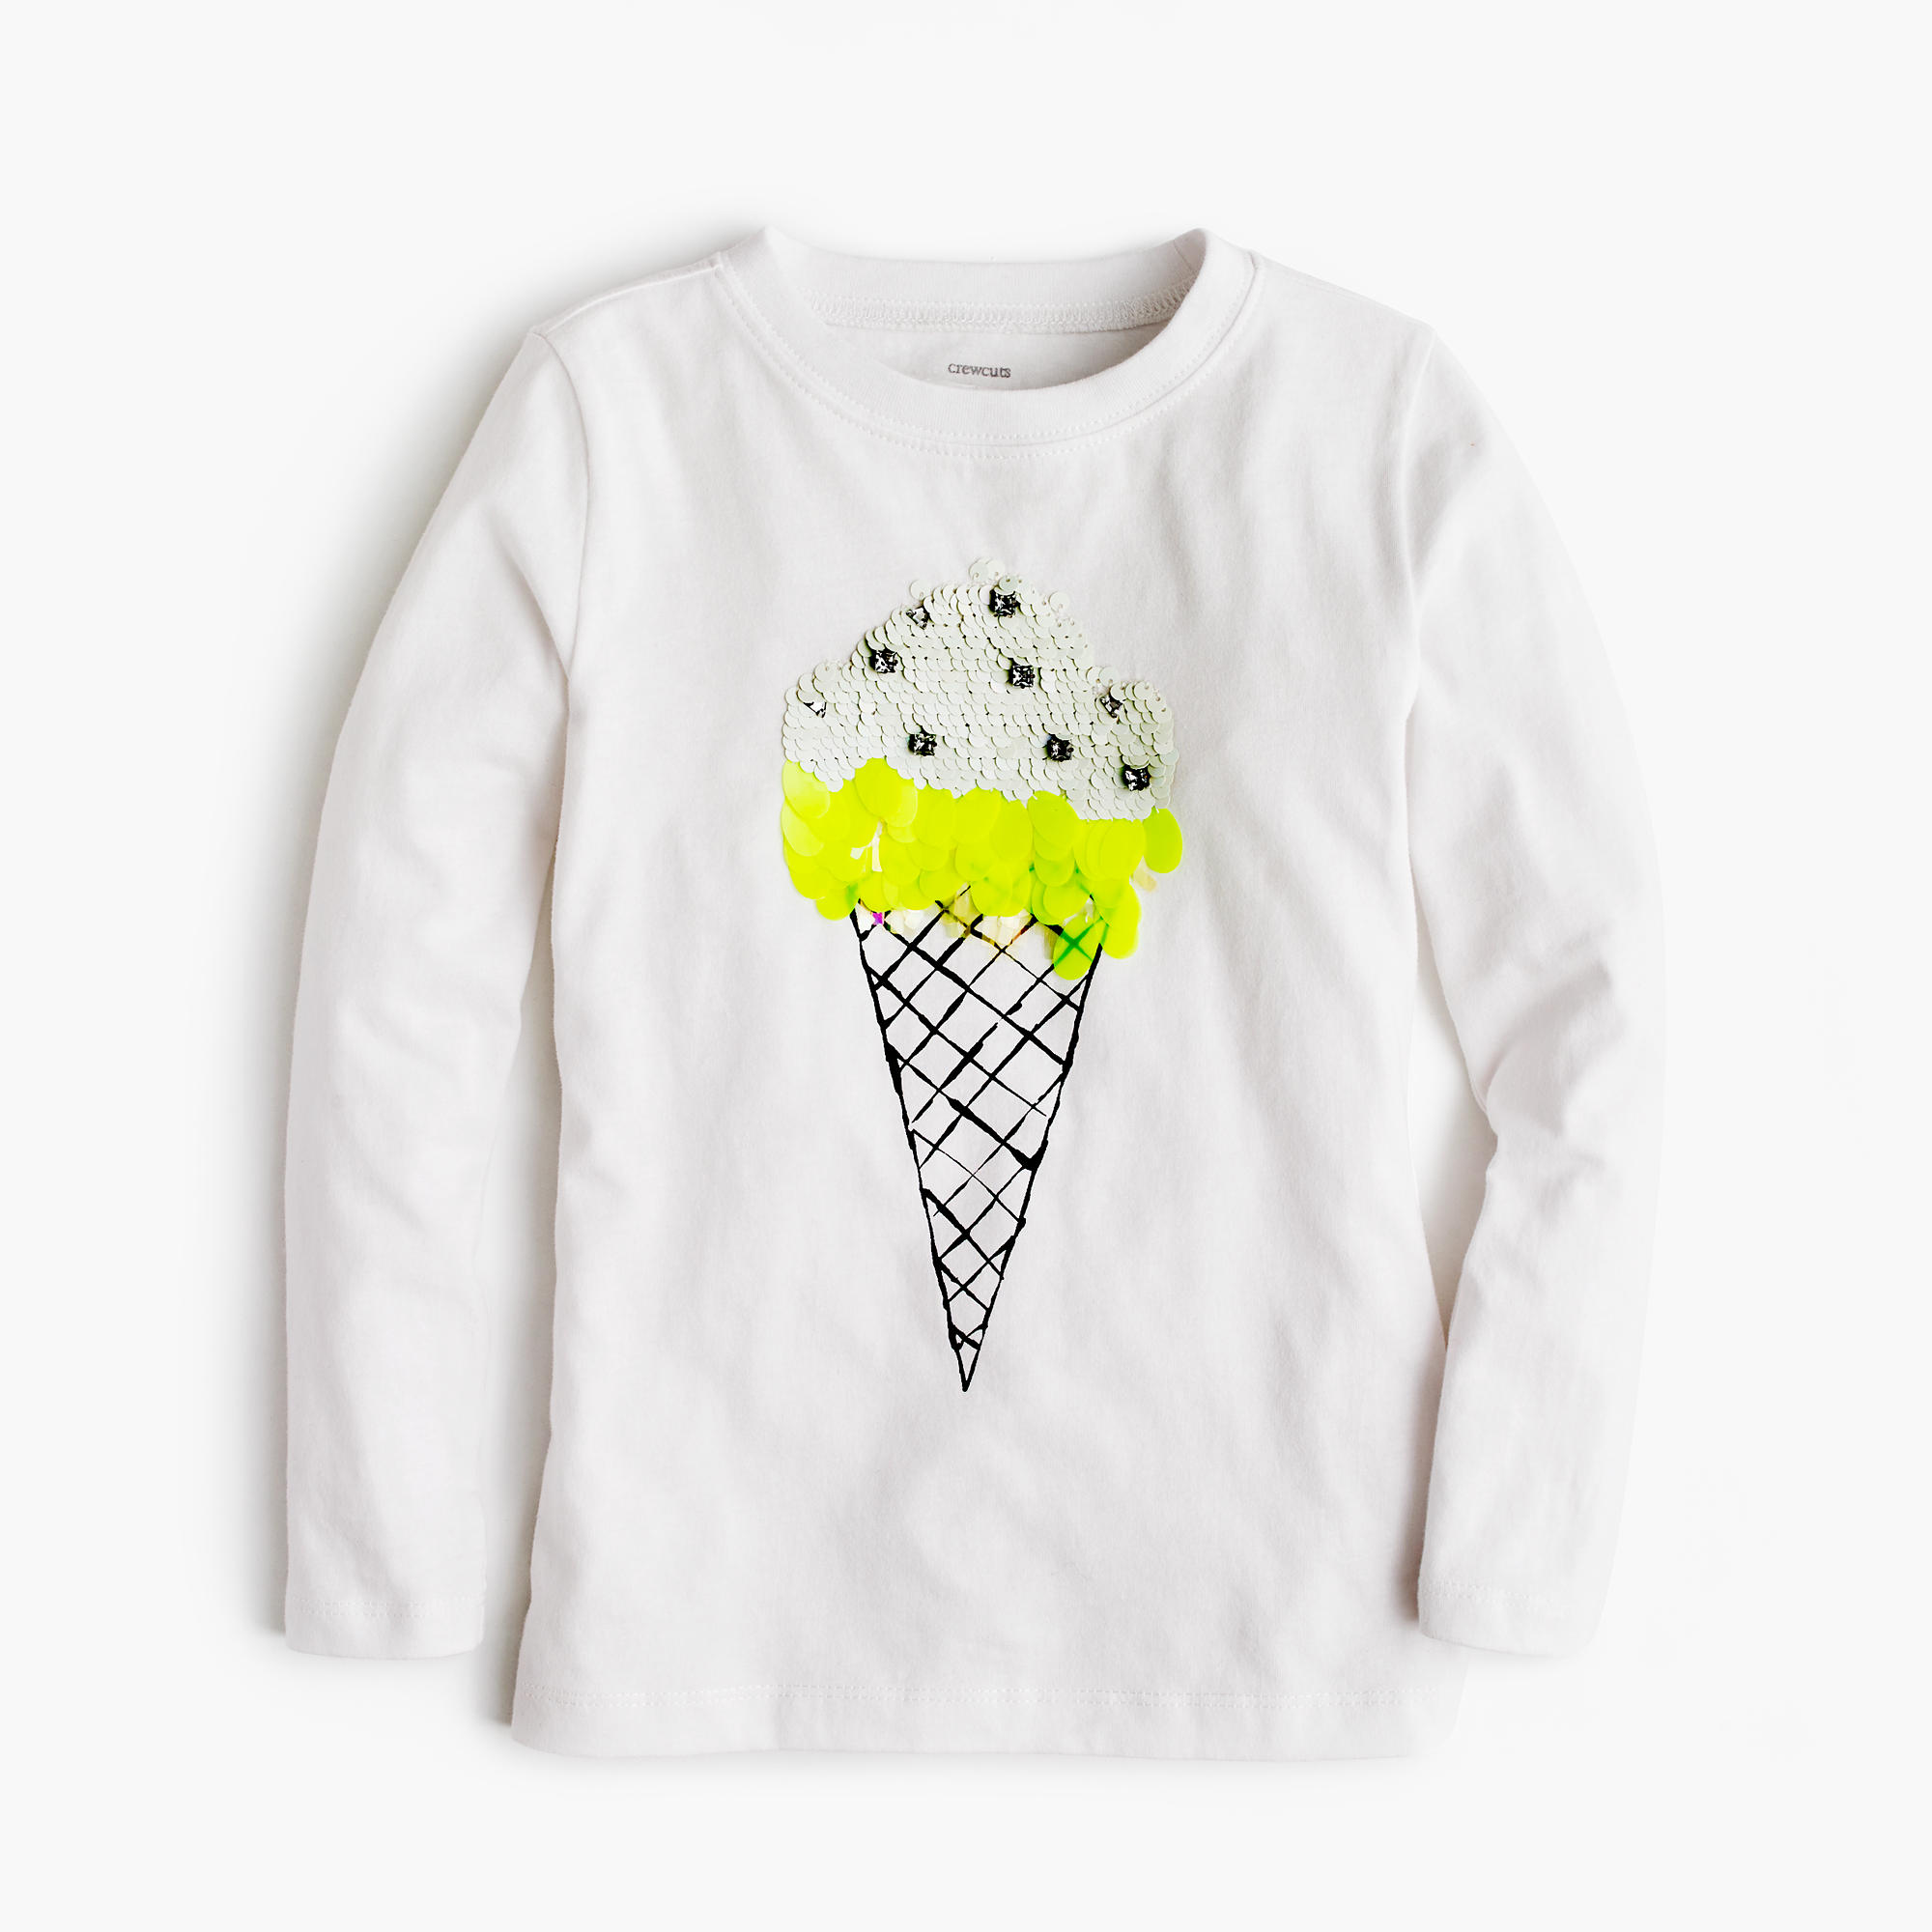 Girls 39 sequin ice cream t shirt girls 39 tees j crew for Girls sequin t shirt